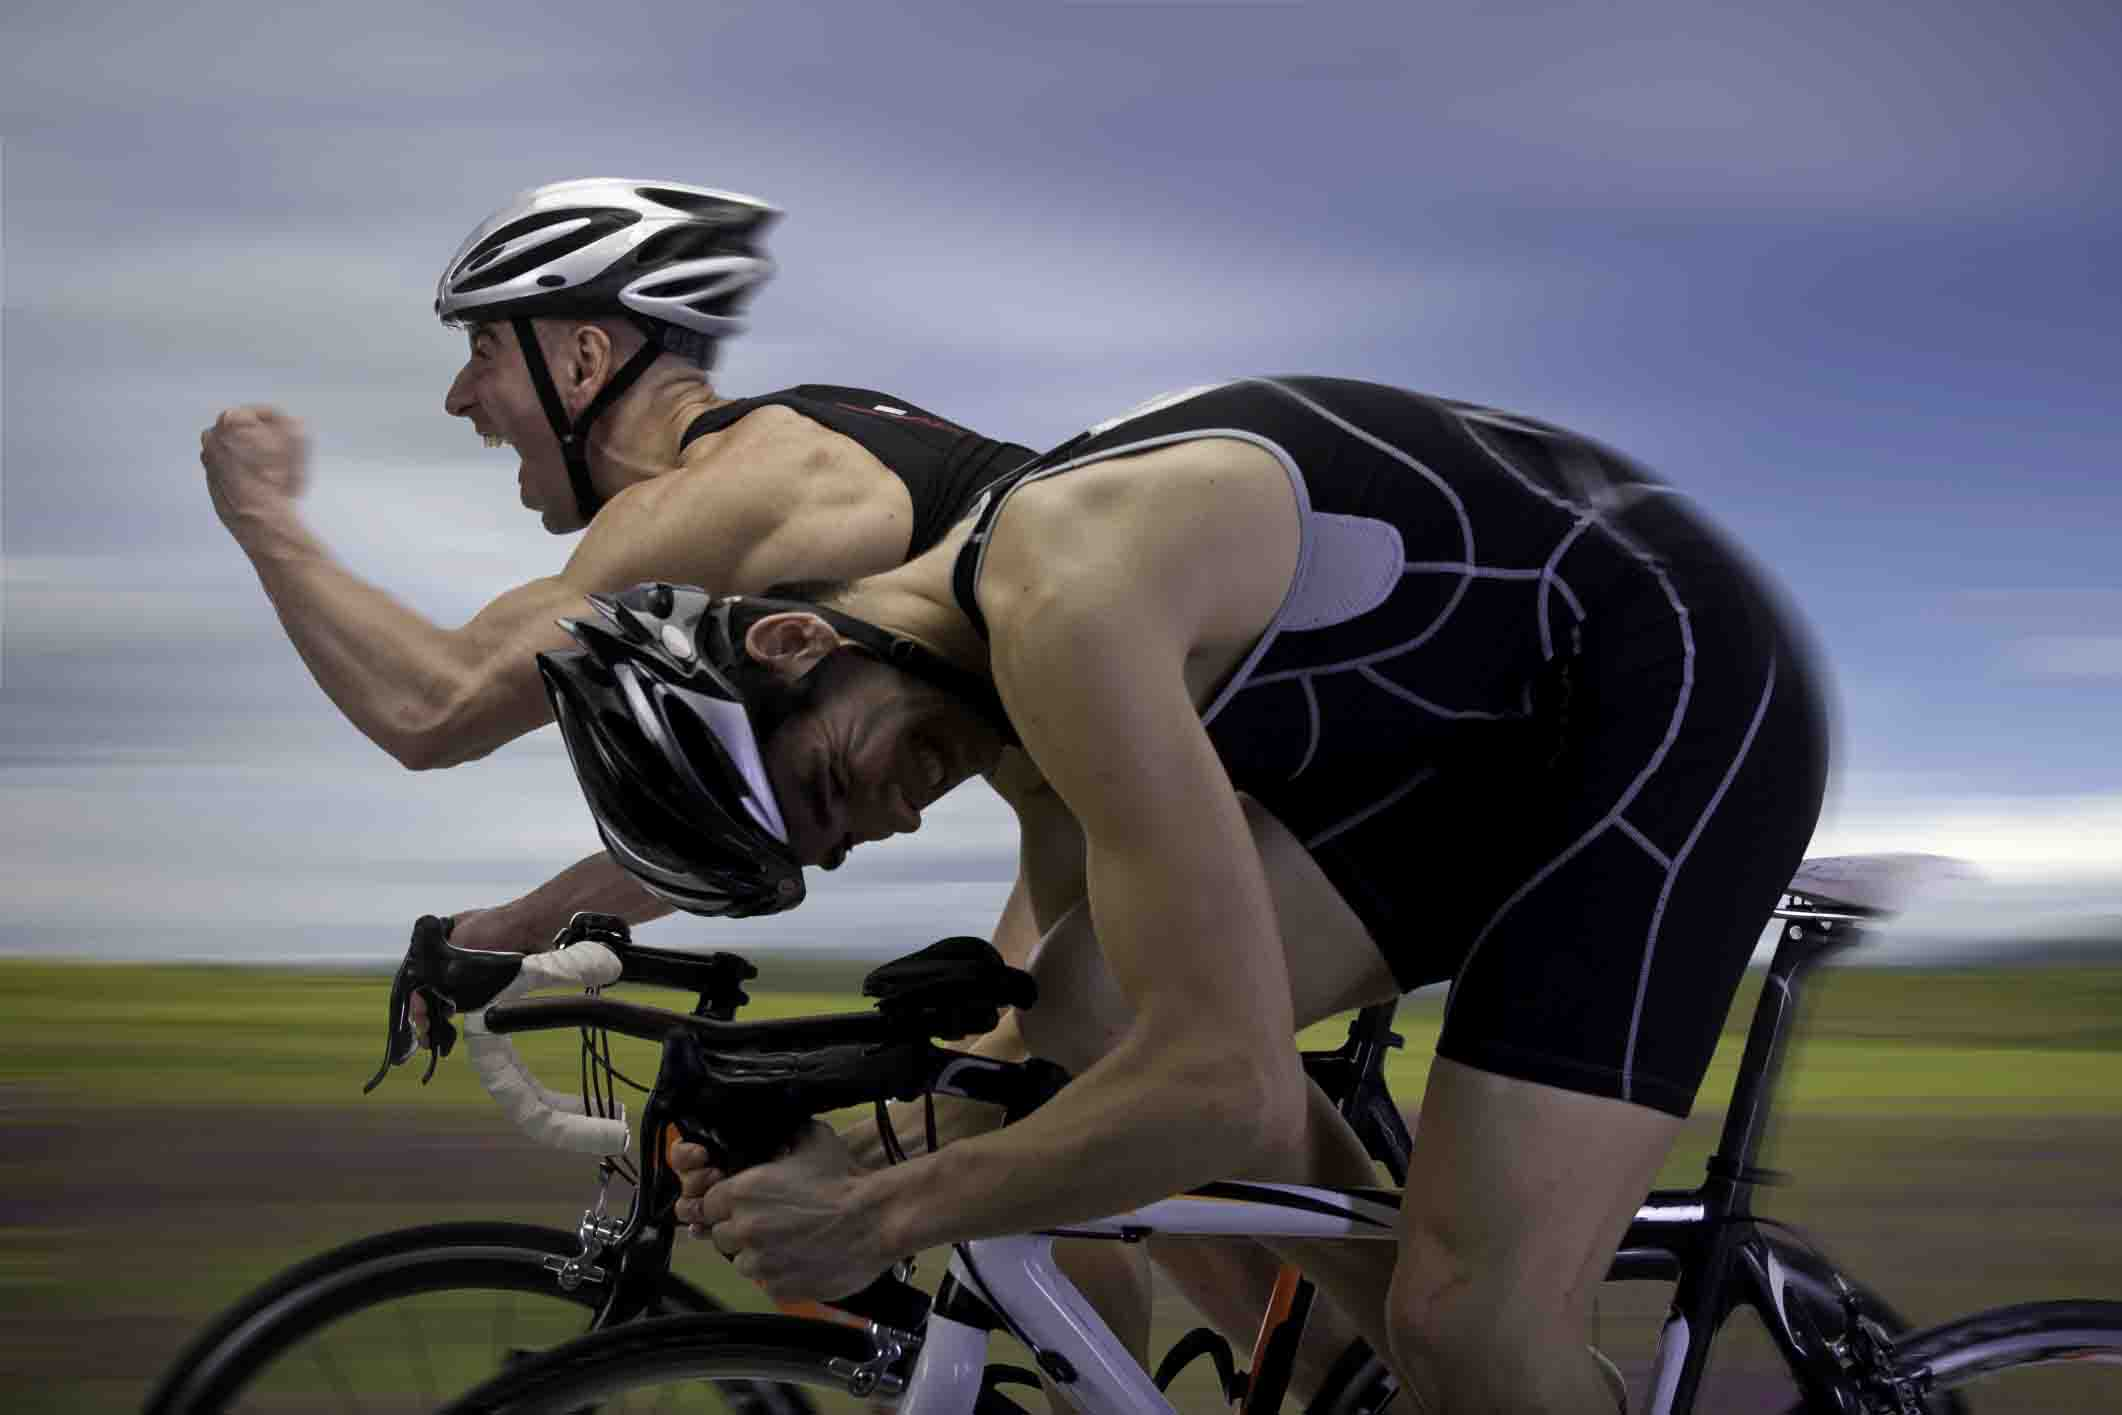 new zealand triathalon bikers 123rf